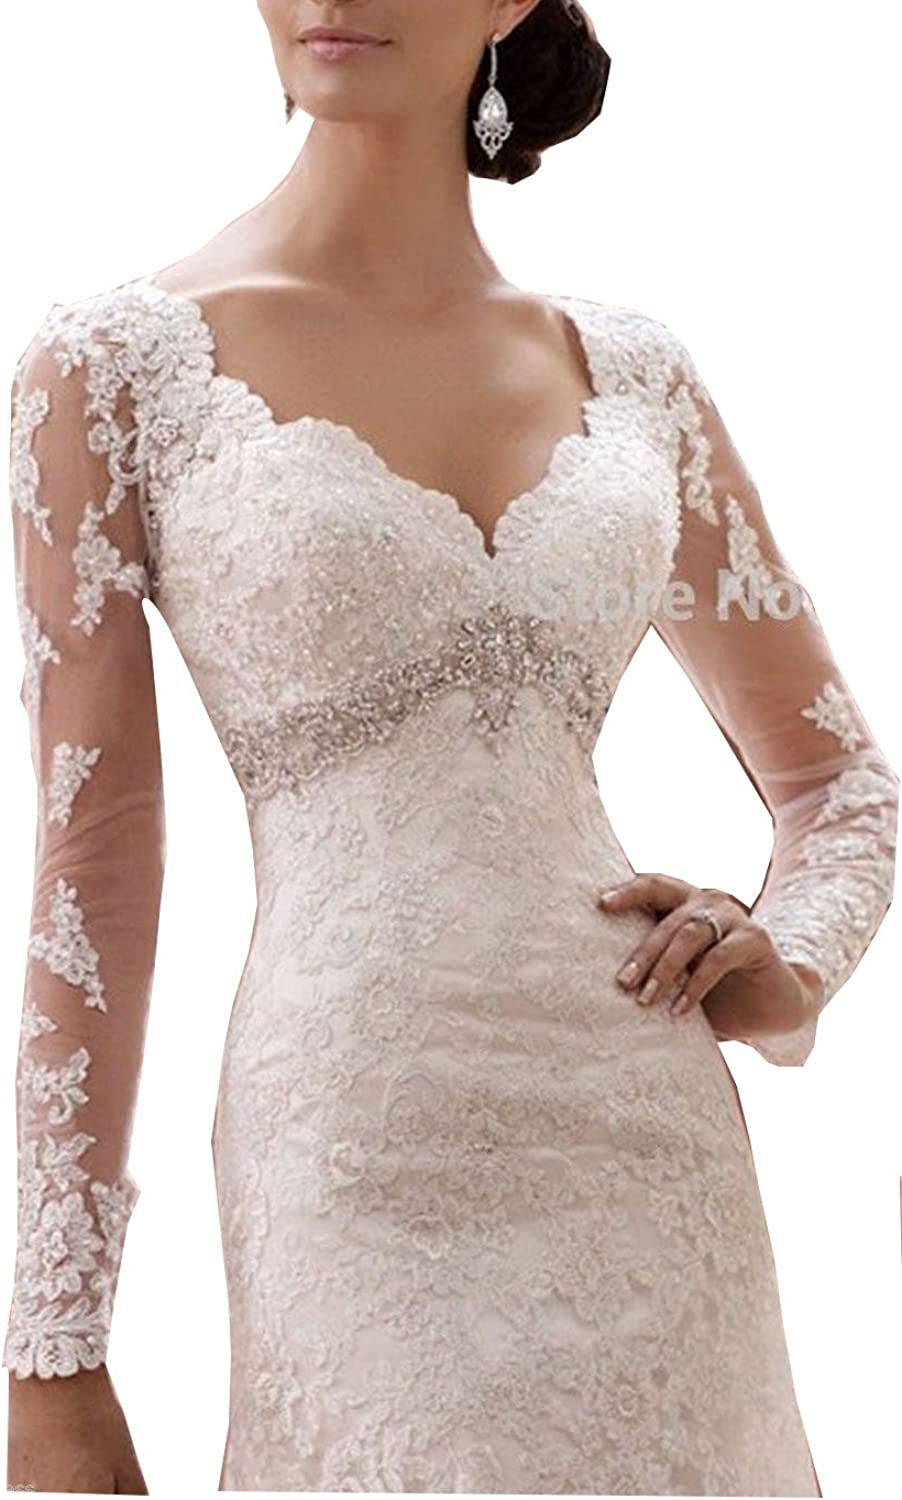 Fanciest Women's Lace Wedding Dresses with Long Sleeves Mermaid Wedding Dress White